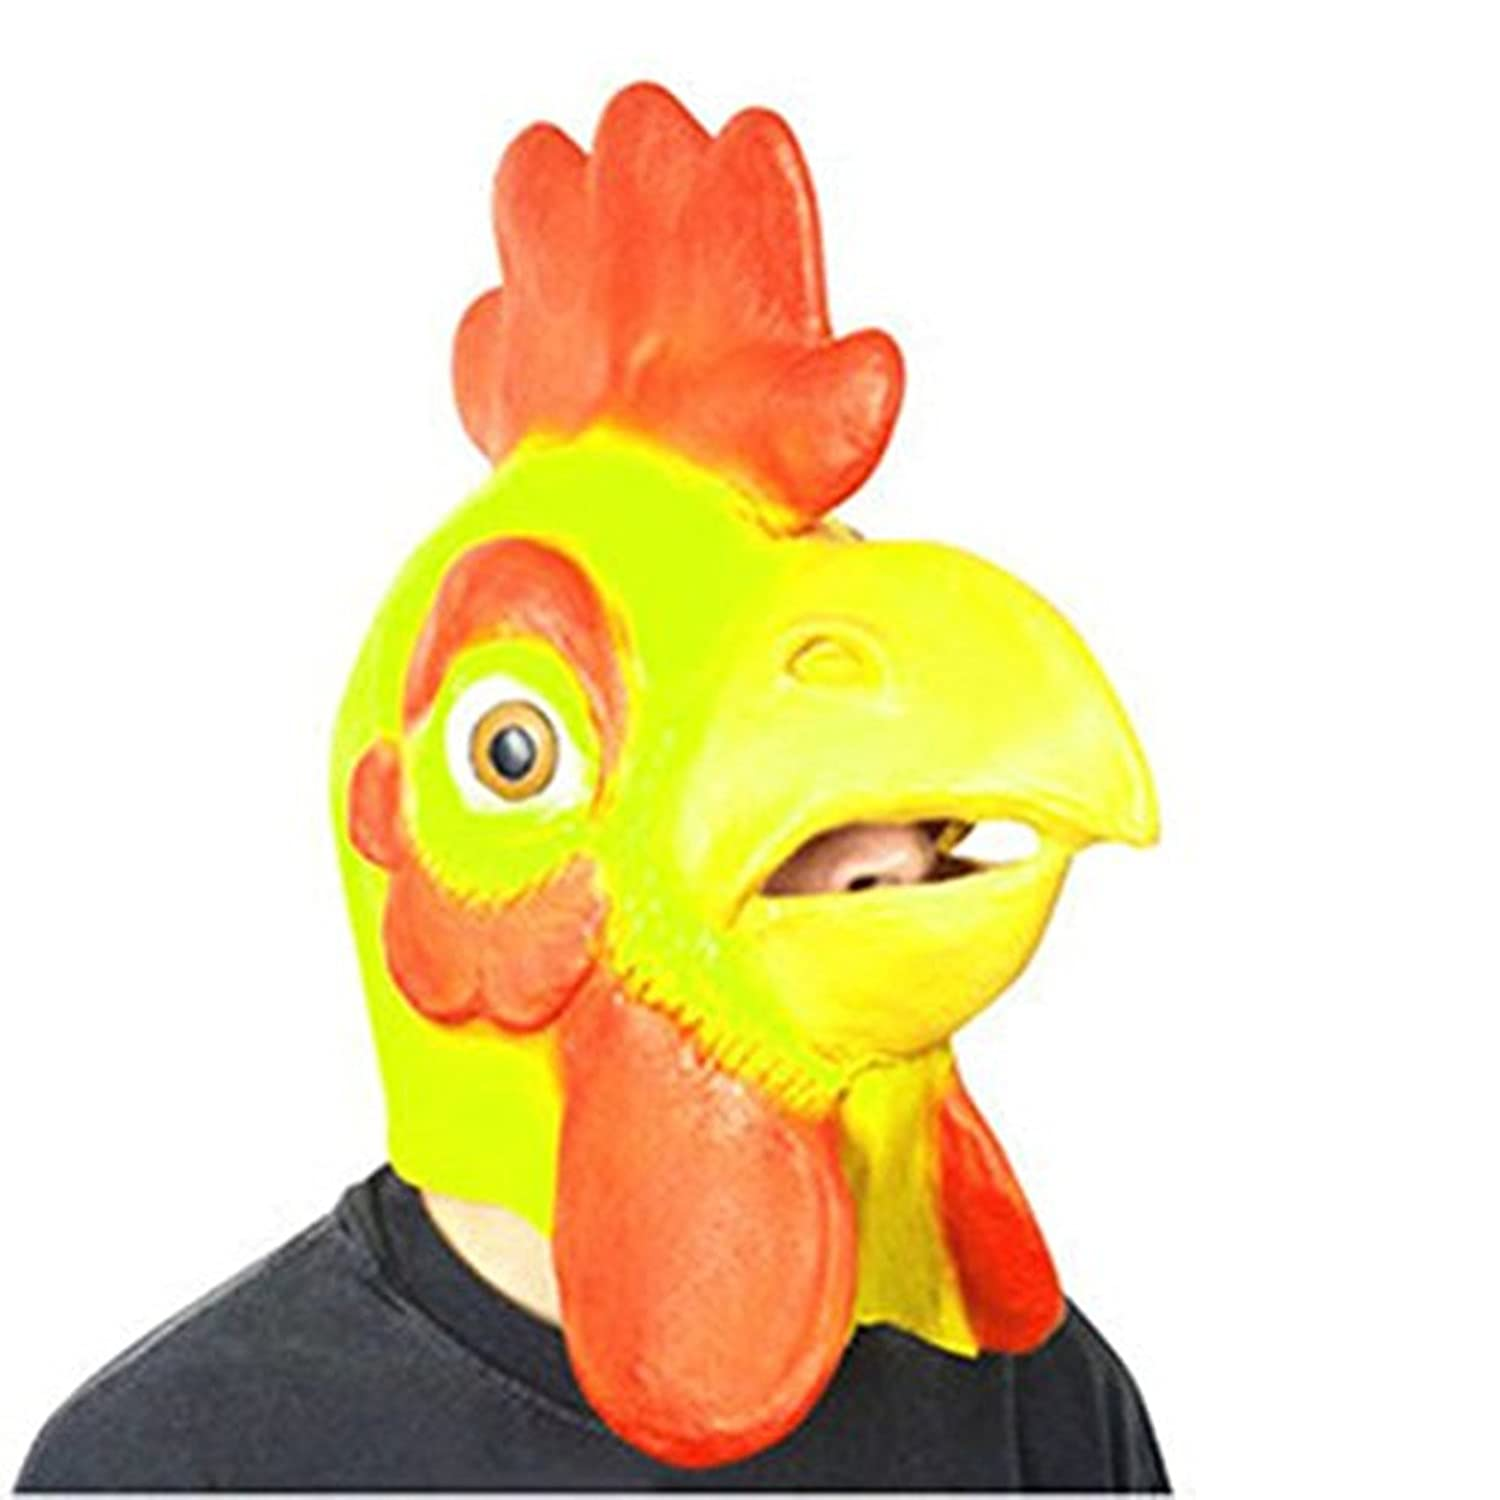 Cock Latex Mask for Christmas,Halloween,Dance Party,Back to School,Video  chat: Amazon.ca: Home & Kitchen